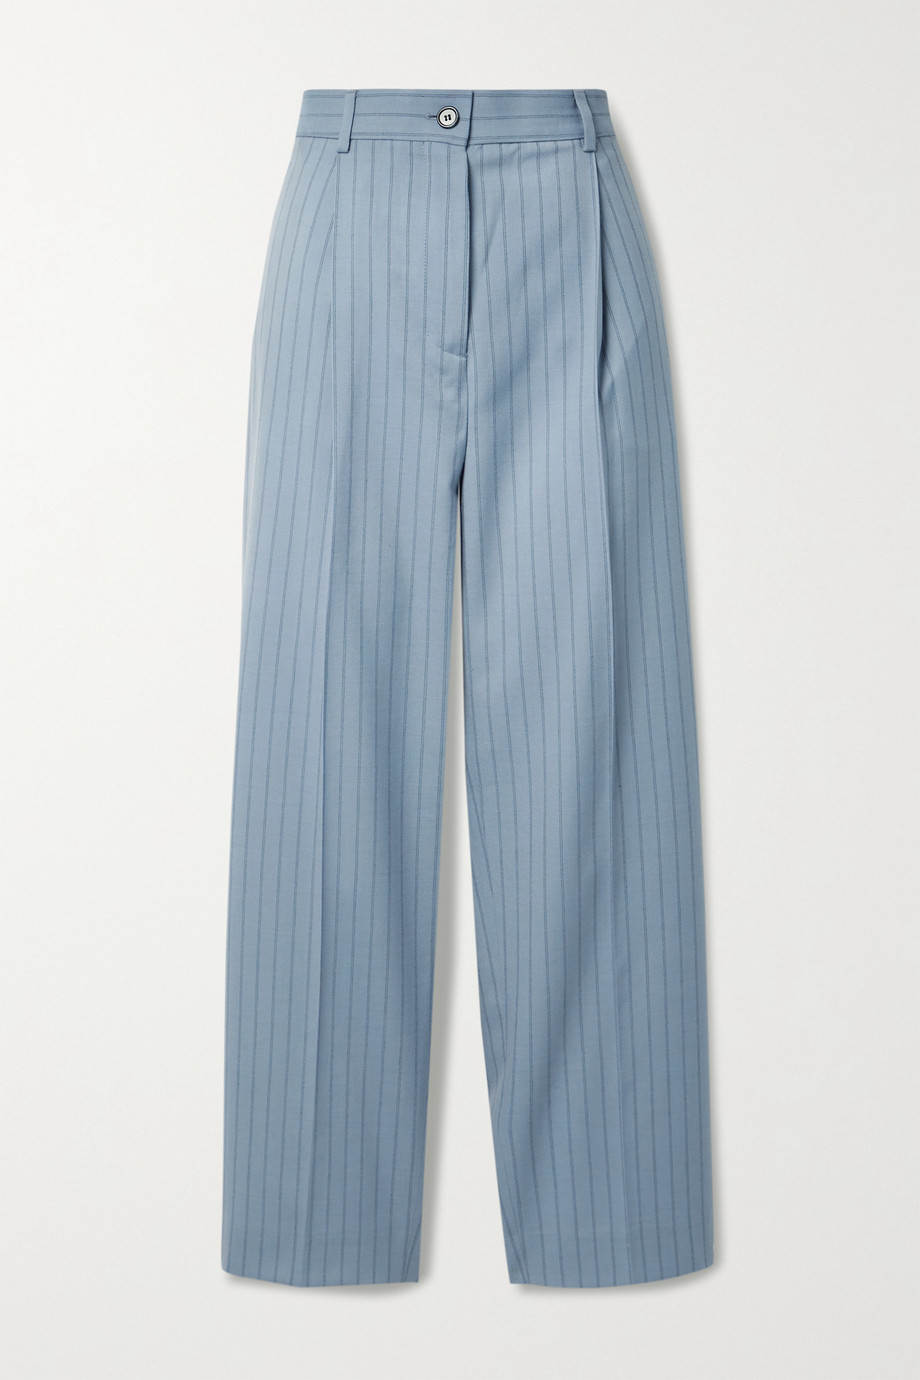 ACNE STUDIOS Pleated pinstriped wool straight-leg pants